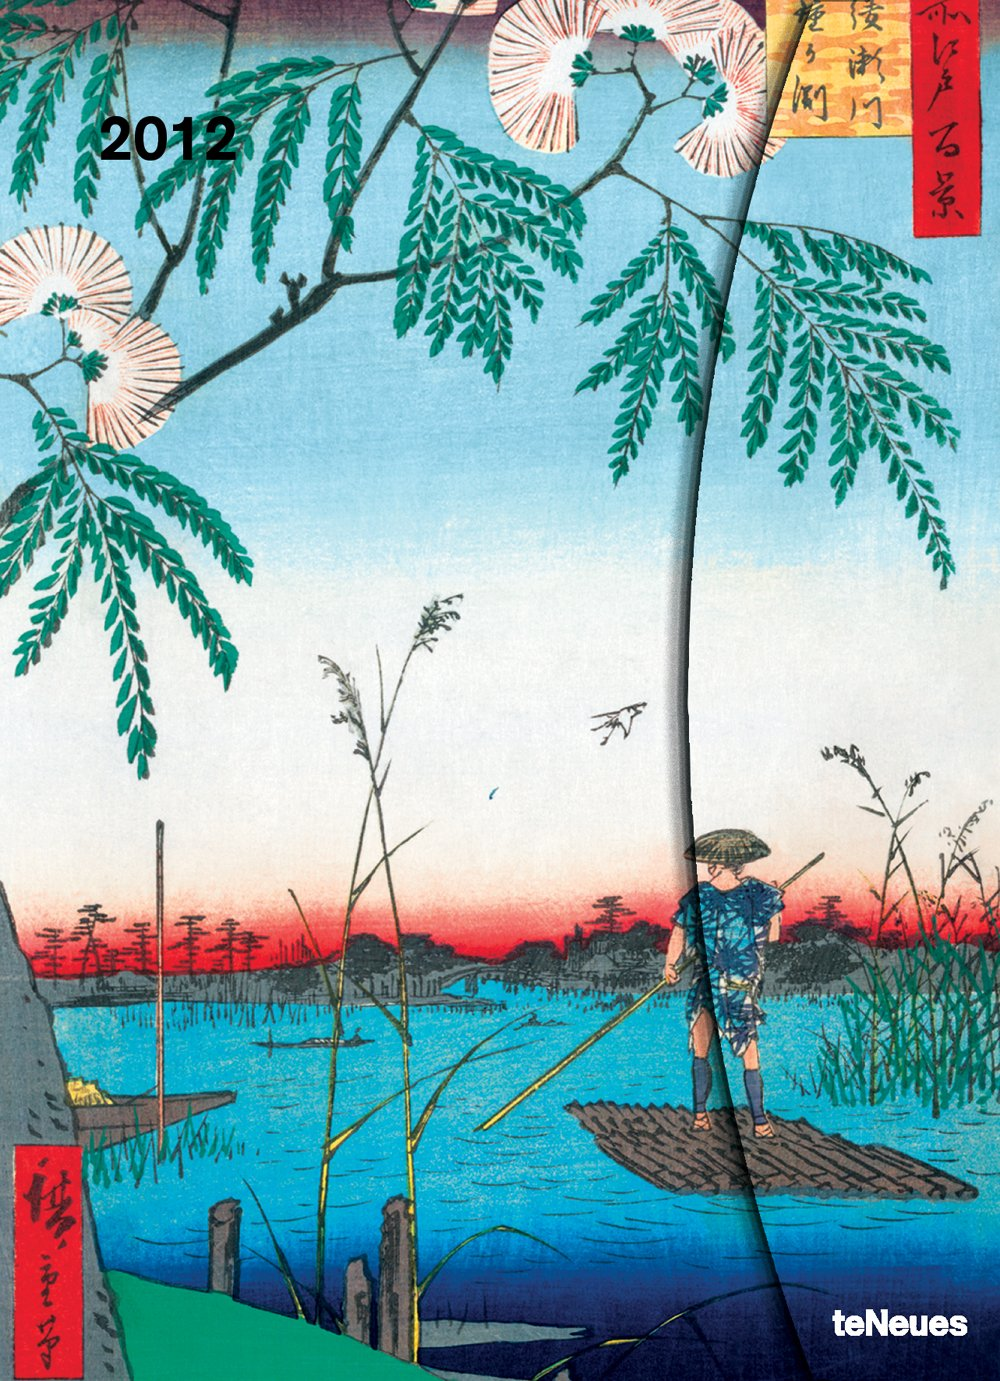 Magneto Diarie groß Hiroshige 2012